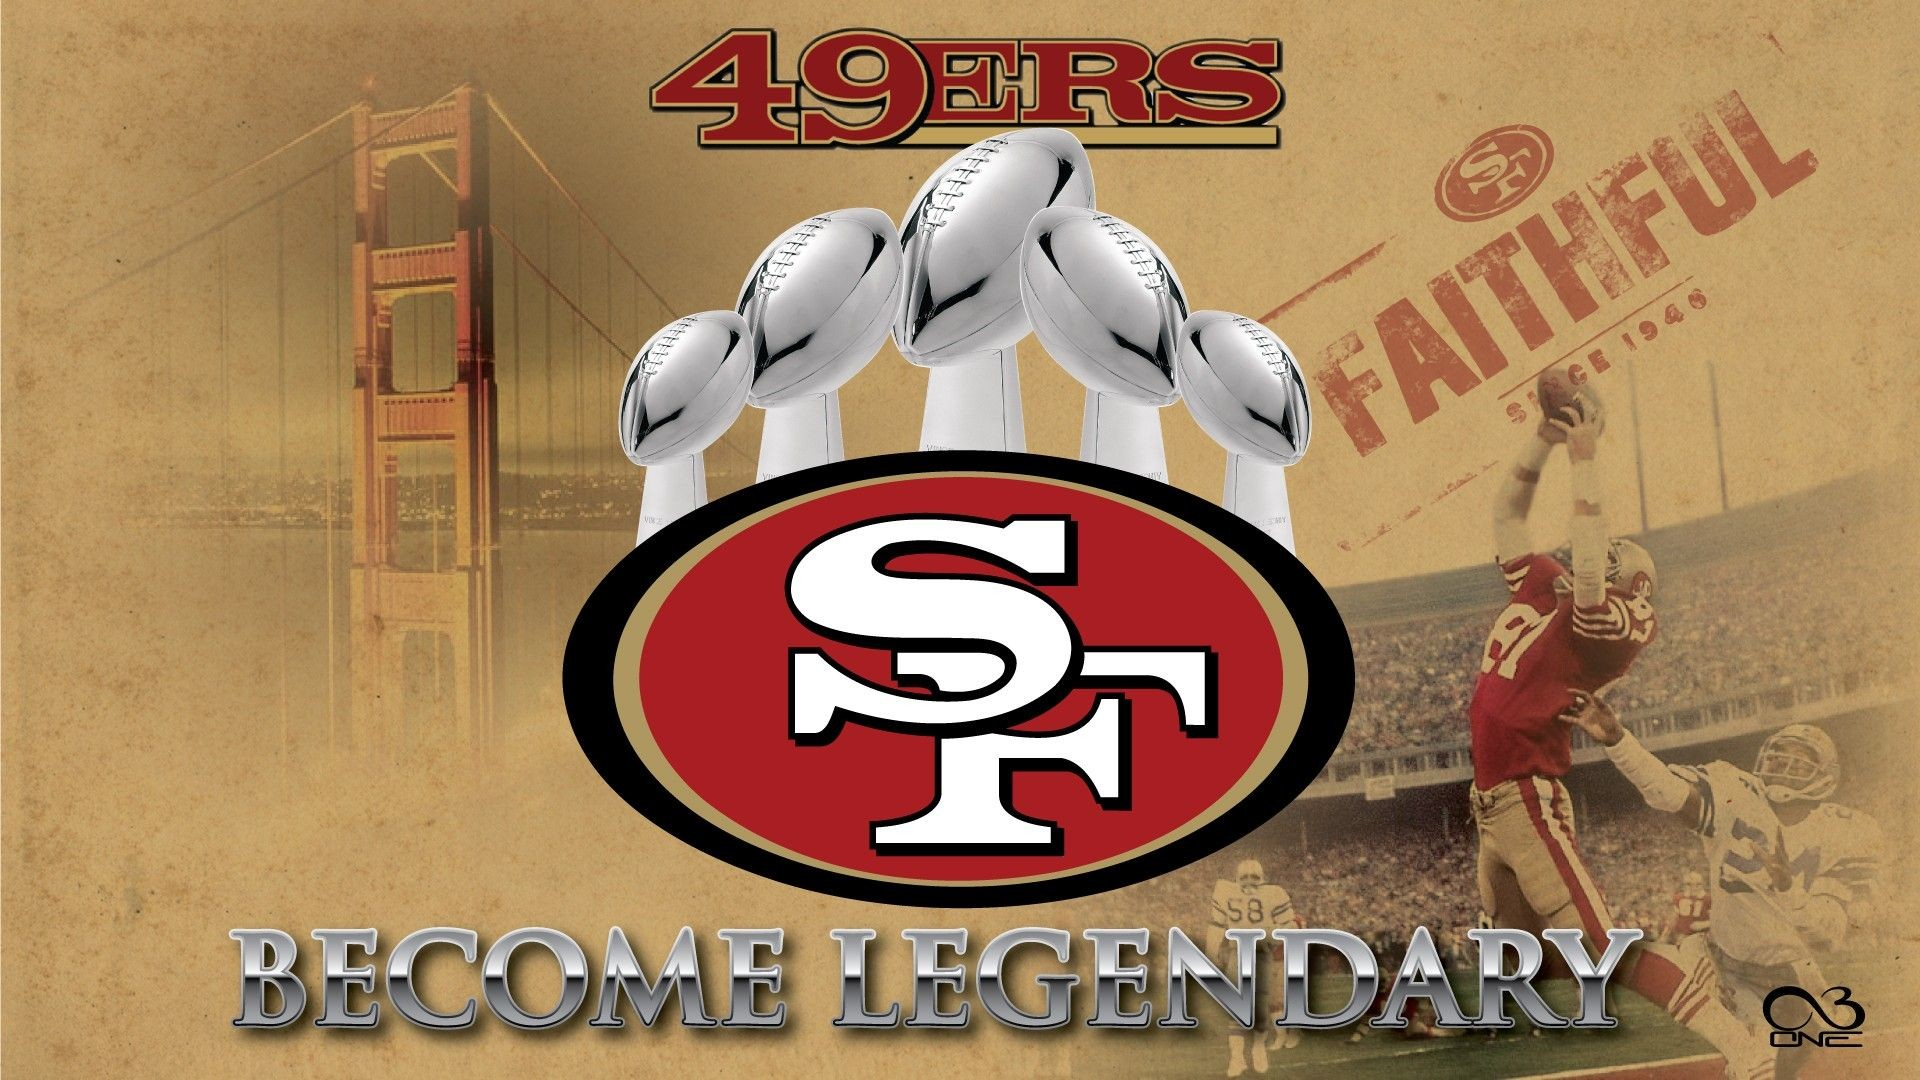 1920x1080 49ers logo | 49ERS San Francisco Logo HD Wallpaper 49ERS San Francisco Logo